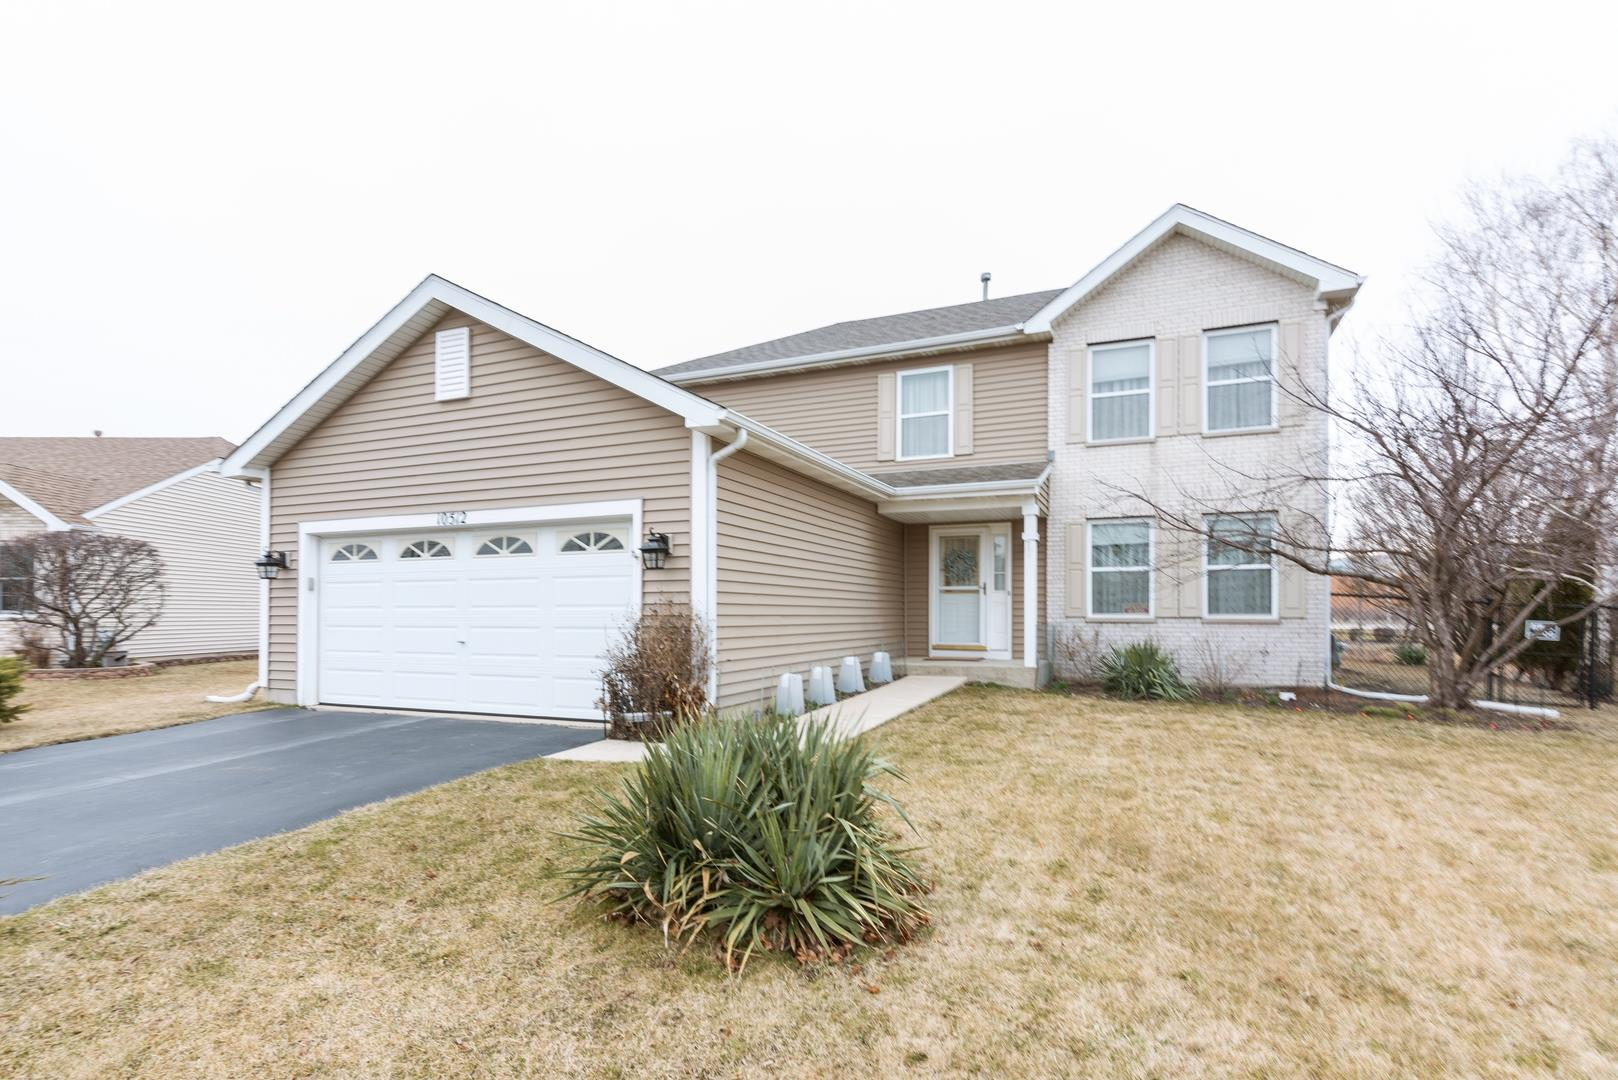 10512 Casselberry N, Huntley, IL 60142 - #: 10673246